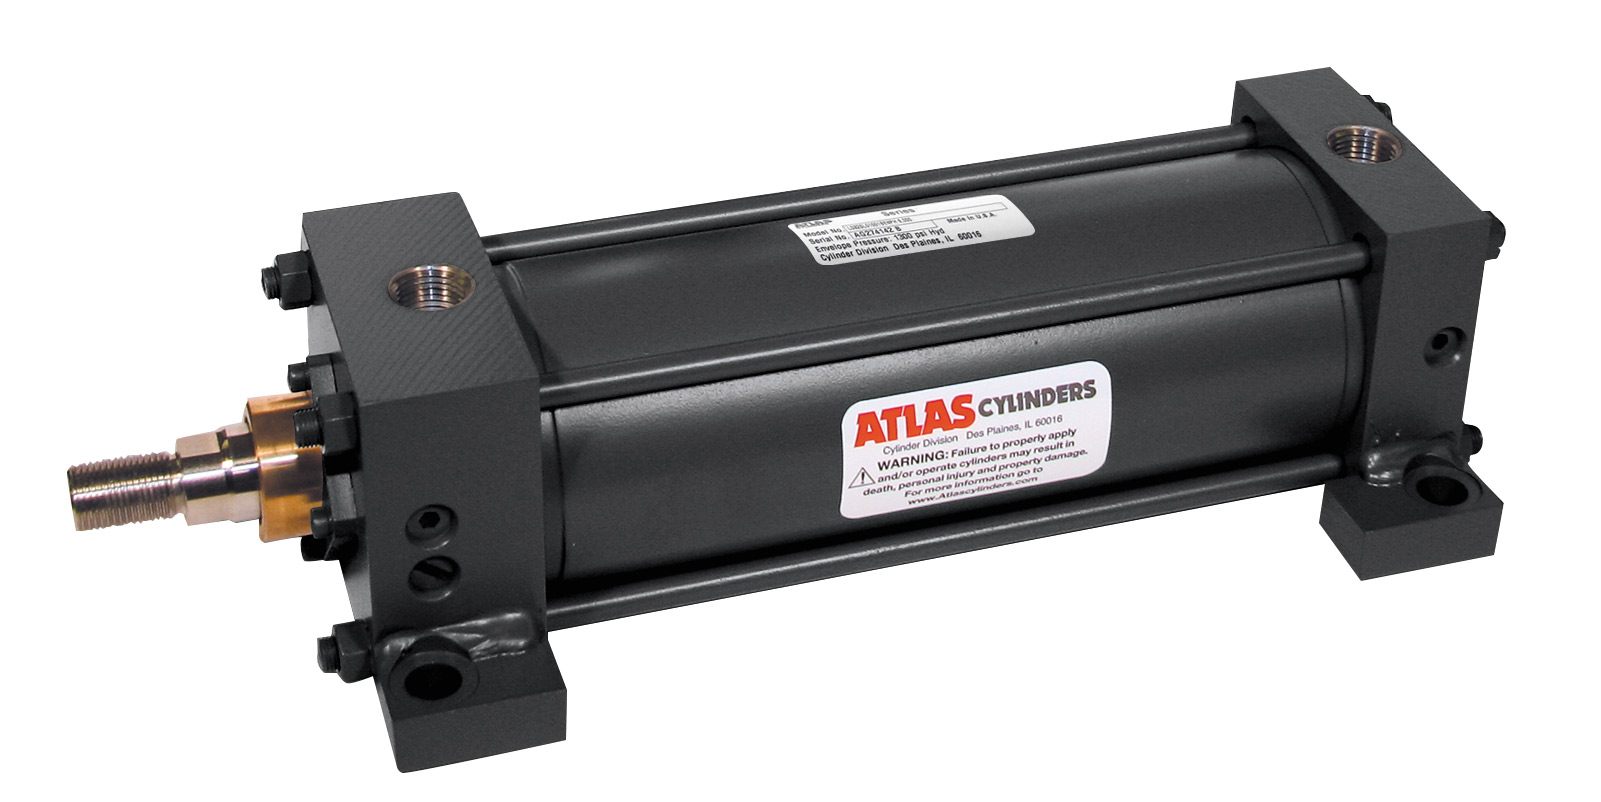 Heavy Duty Pneumatic Cylinders, Series A - Atlas Cylinders